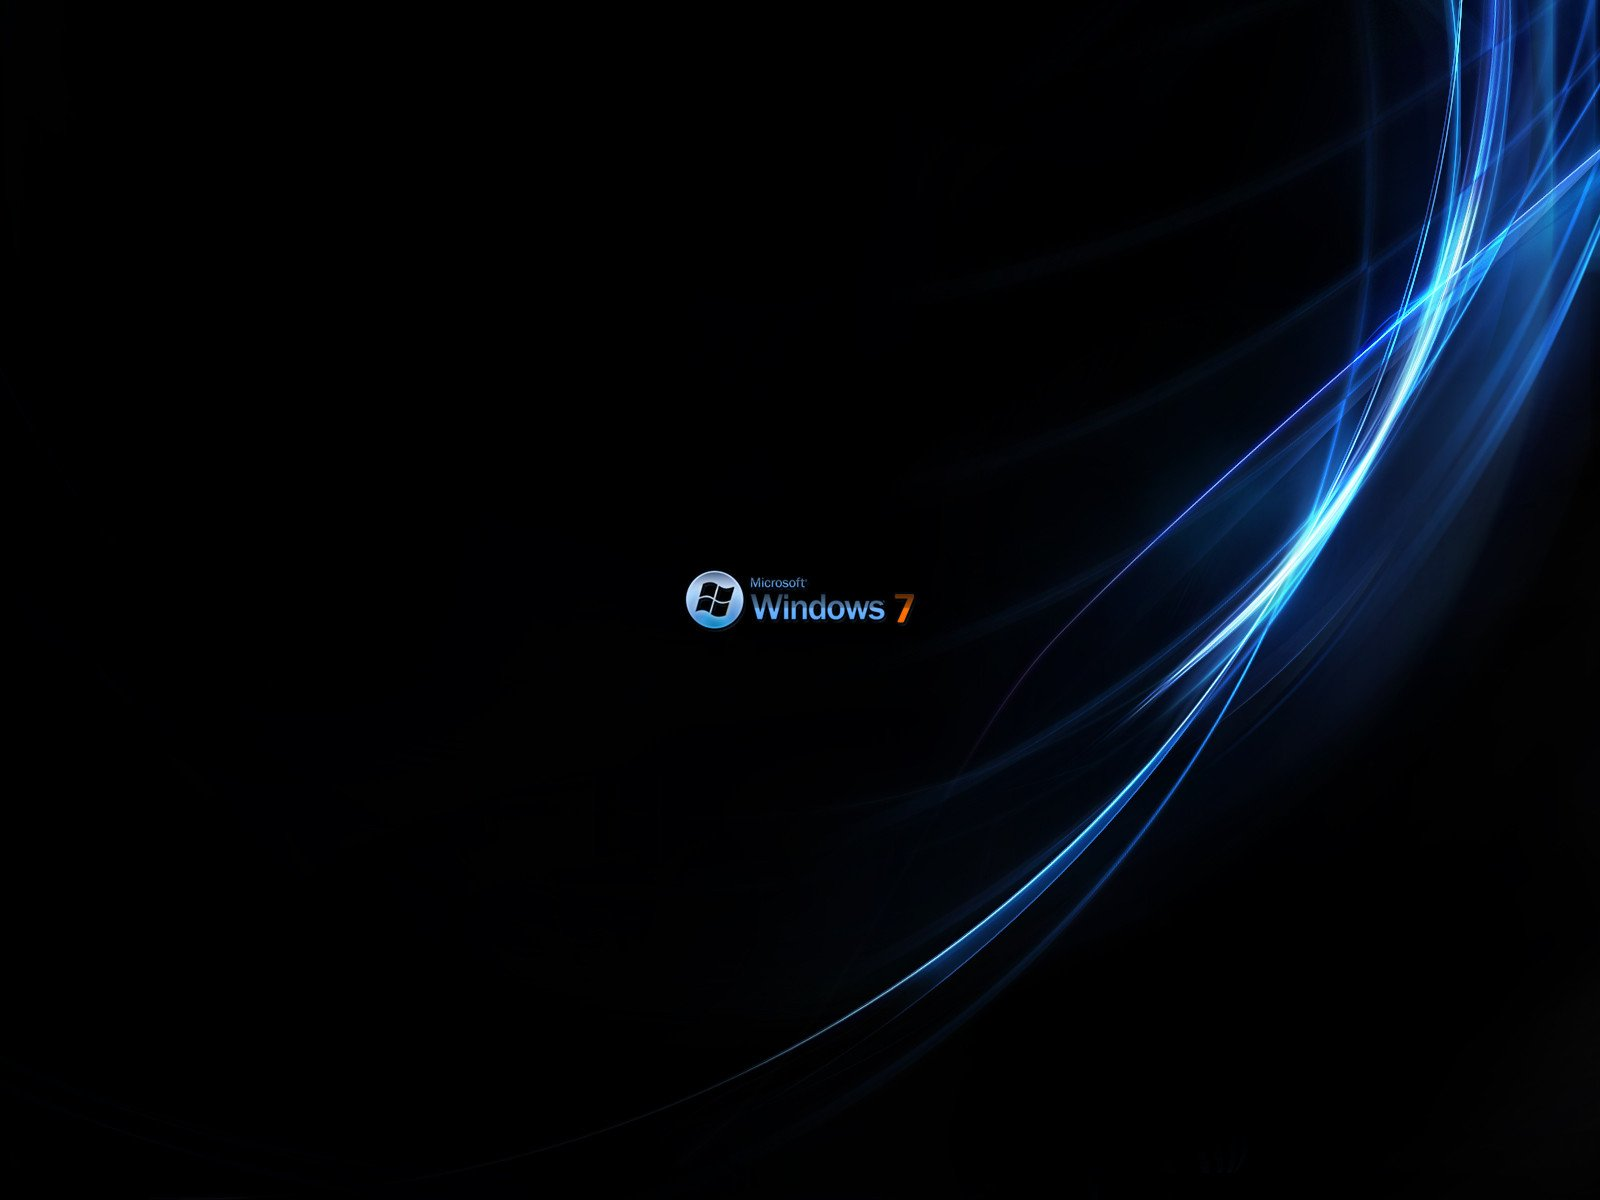 Windows 7 1600x1200